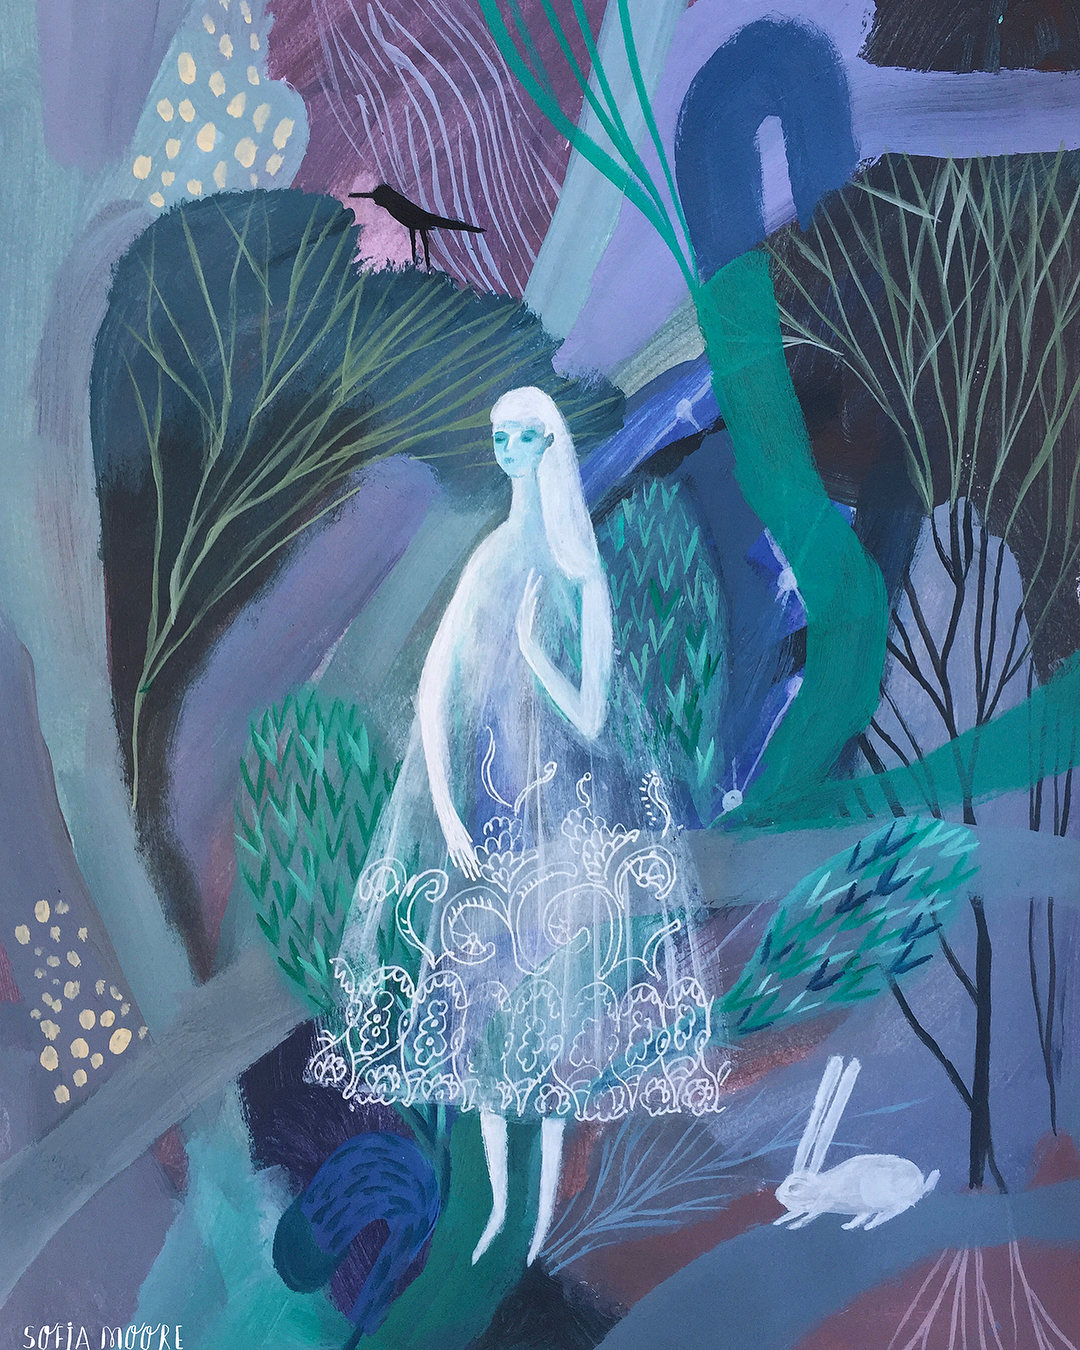 Ghost-Like Figures Traverse Lush Painted Landscapes in Illustrations by Sofia Moore